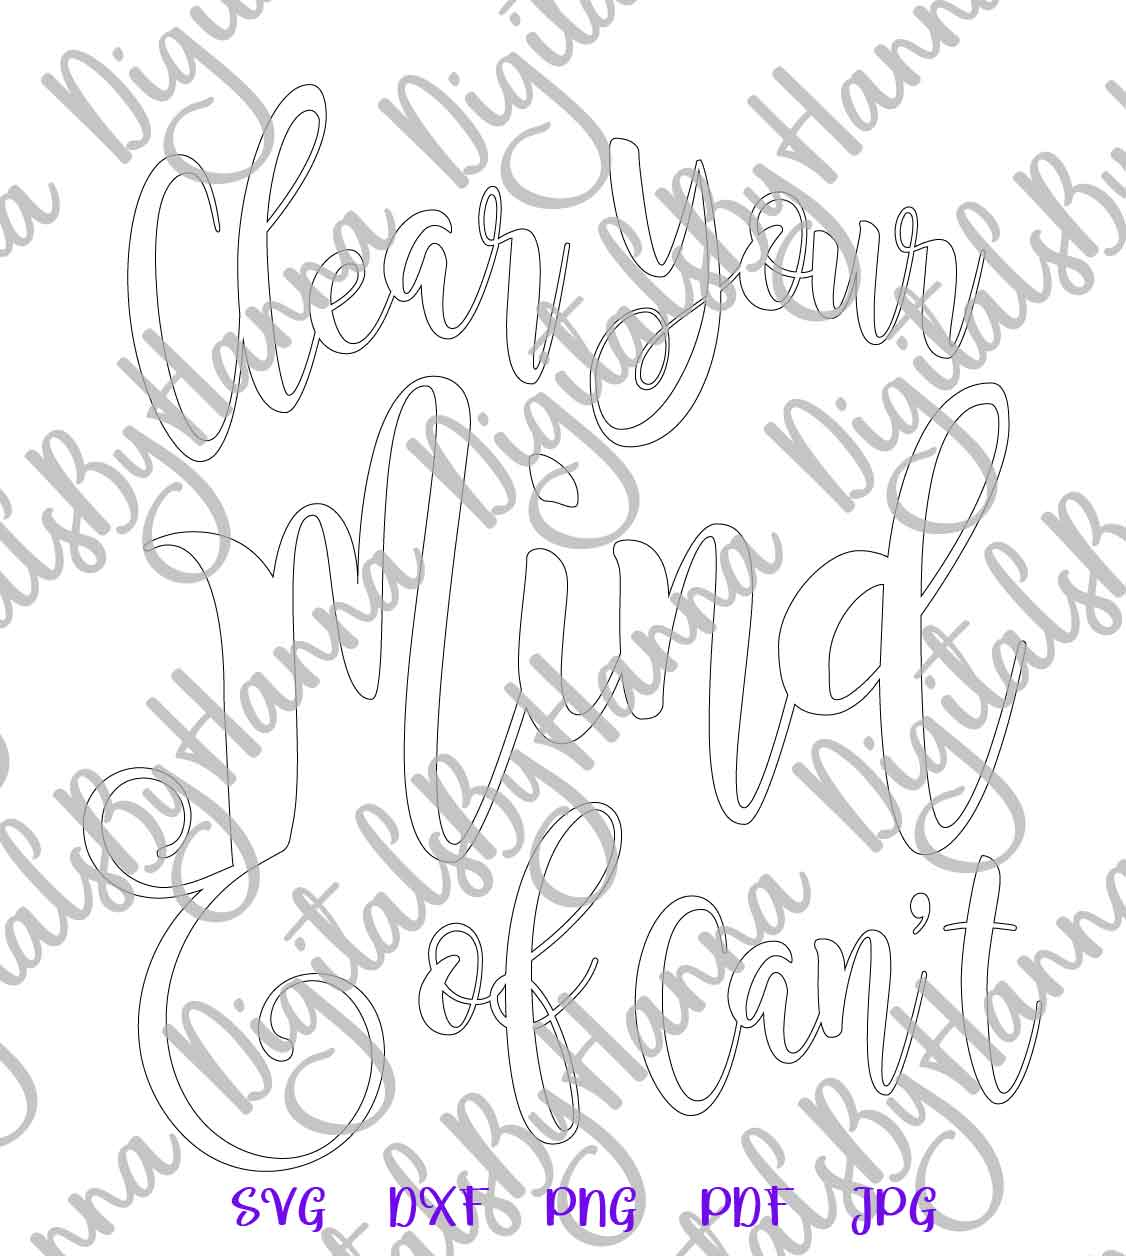 Clear Your Mind of Can't Inspirational Cut File SVG DXF PNG example image 7